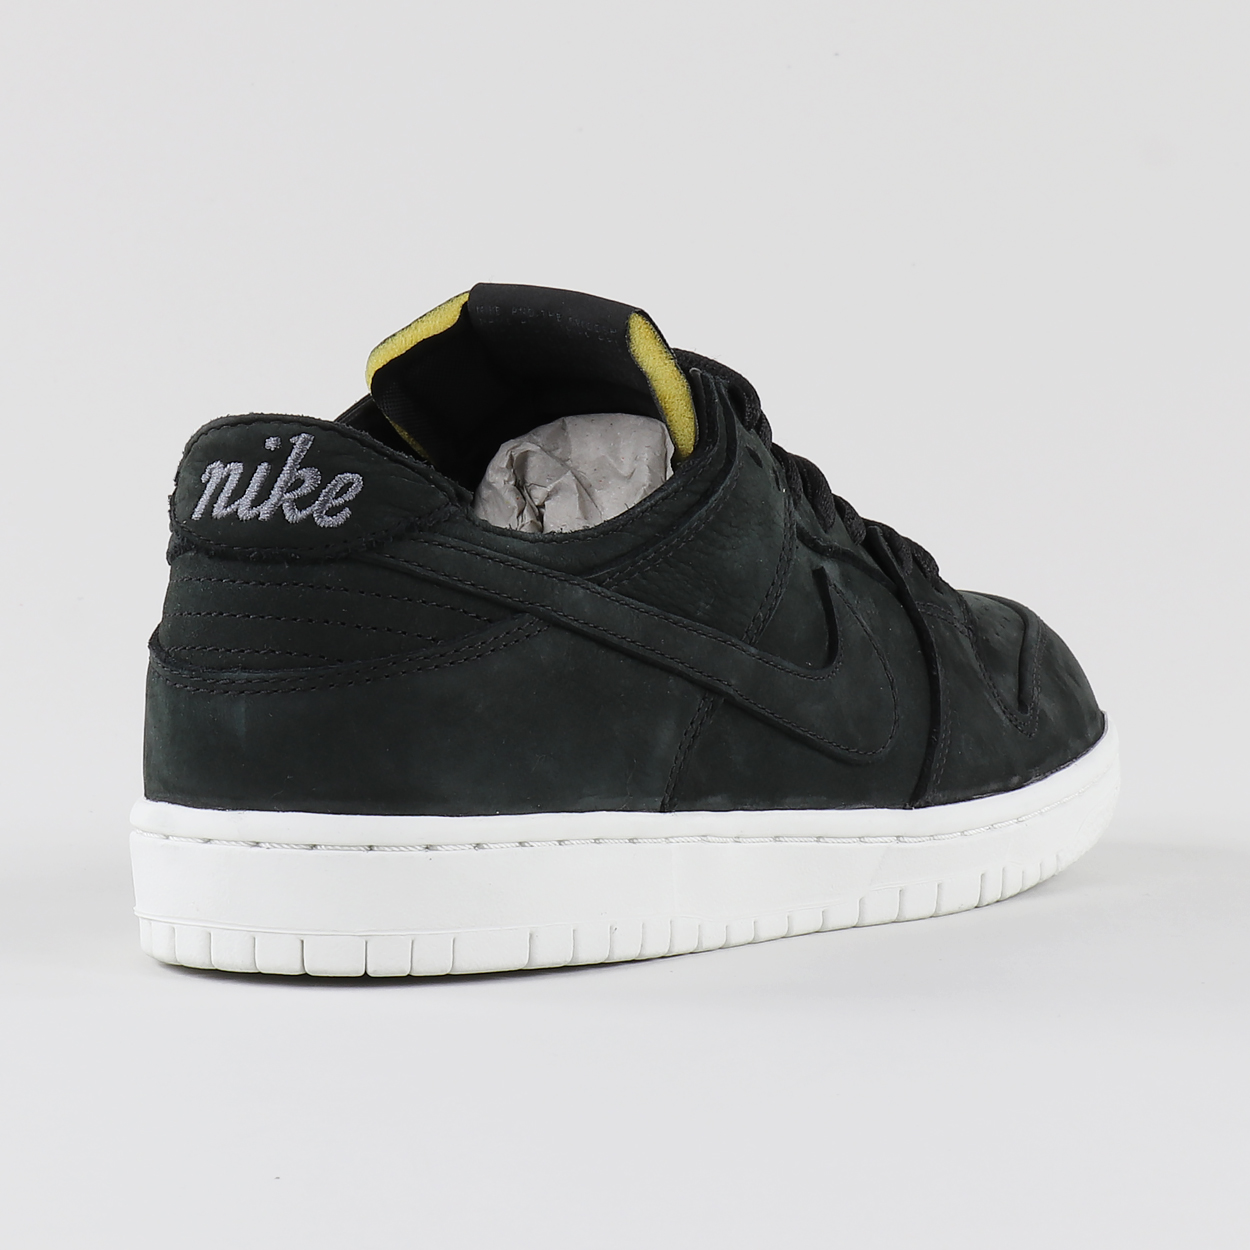 879330f70941b The timeless Dunk silhouette takes a low shape and a deconstructed nubuck  upper to reveal itself as a marvelous skate shoe with Zoom Air heel unit  and toe ...